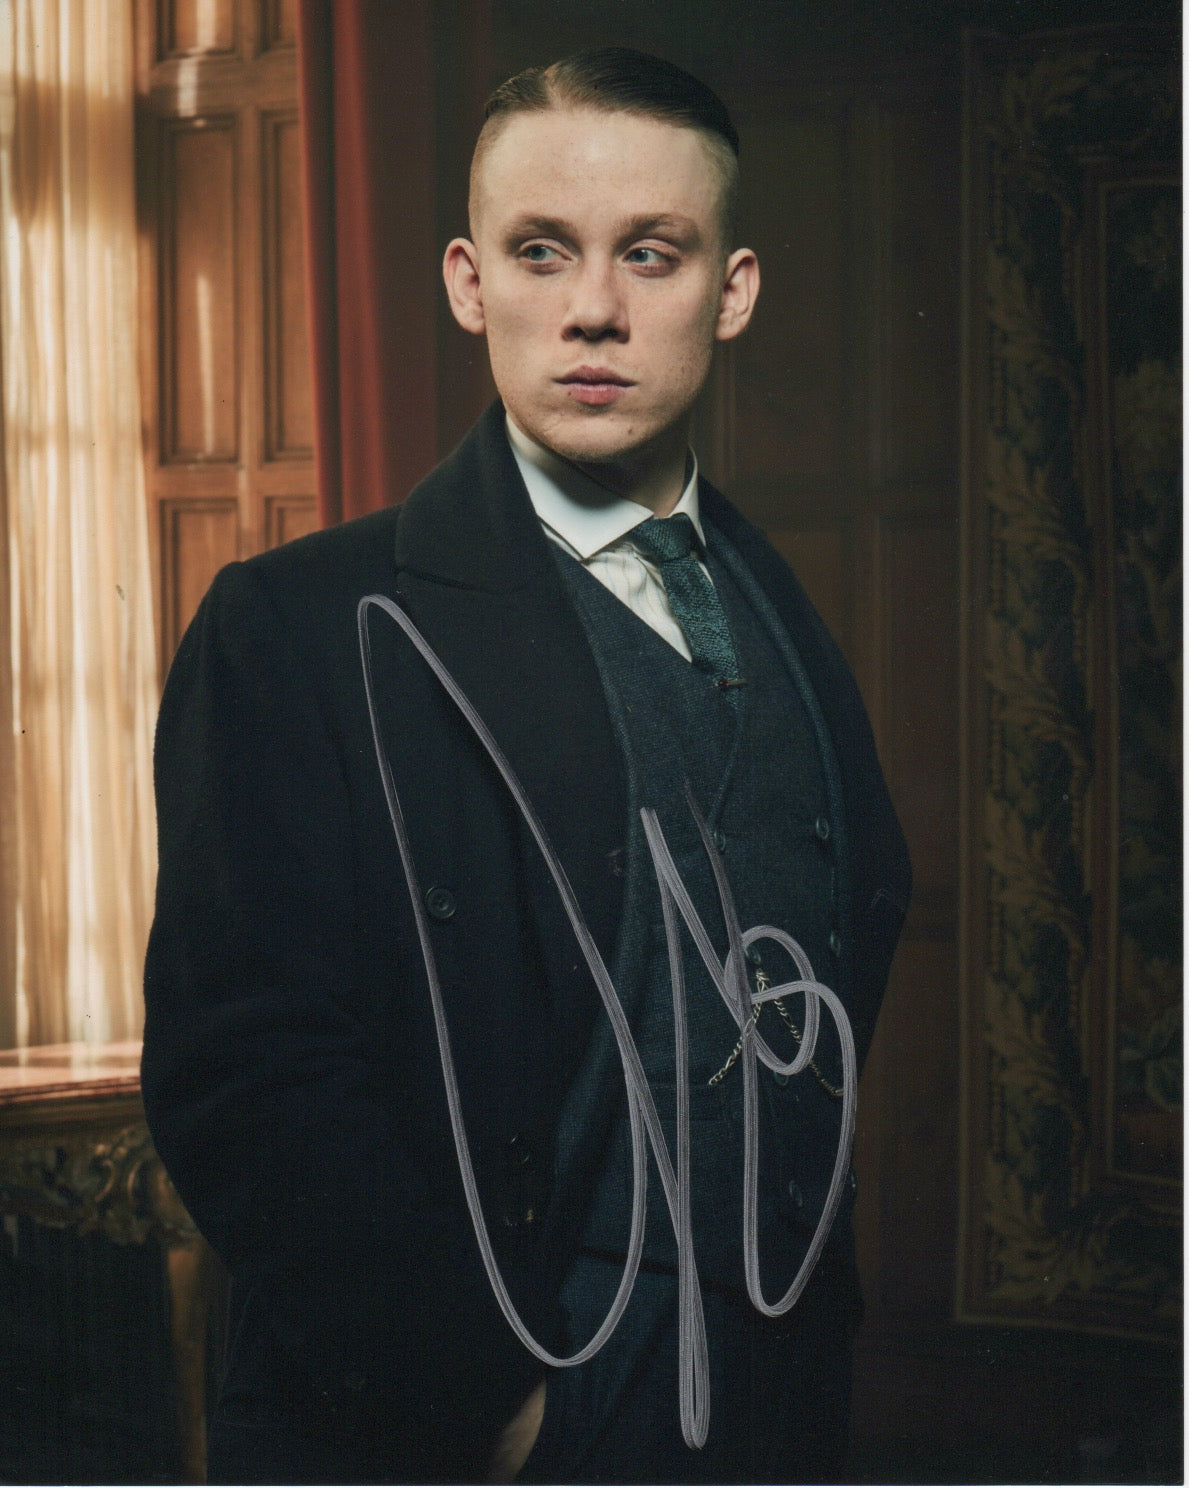 Joe Cole Peaky Blinders Signed Autograph 8x10 Photo #2 - Outlaw Hobbies Authentic Autographs